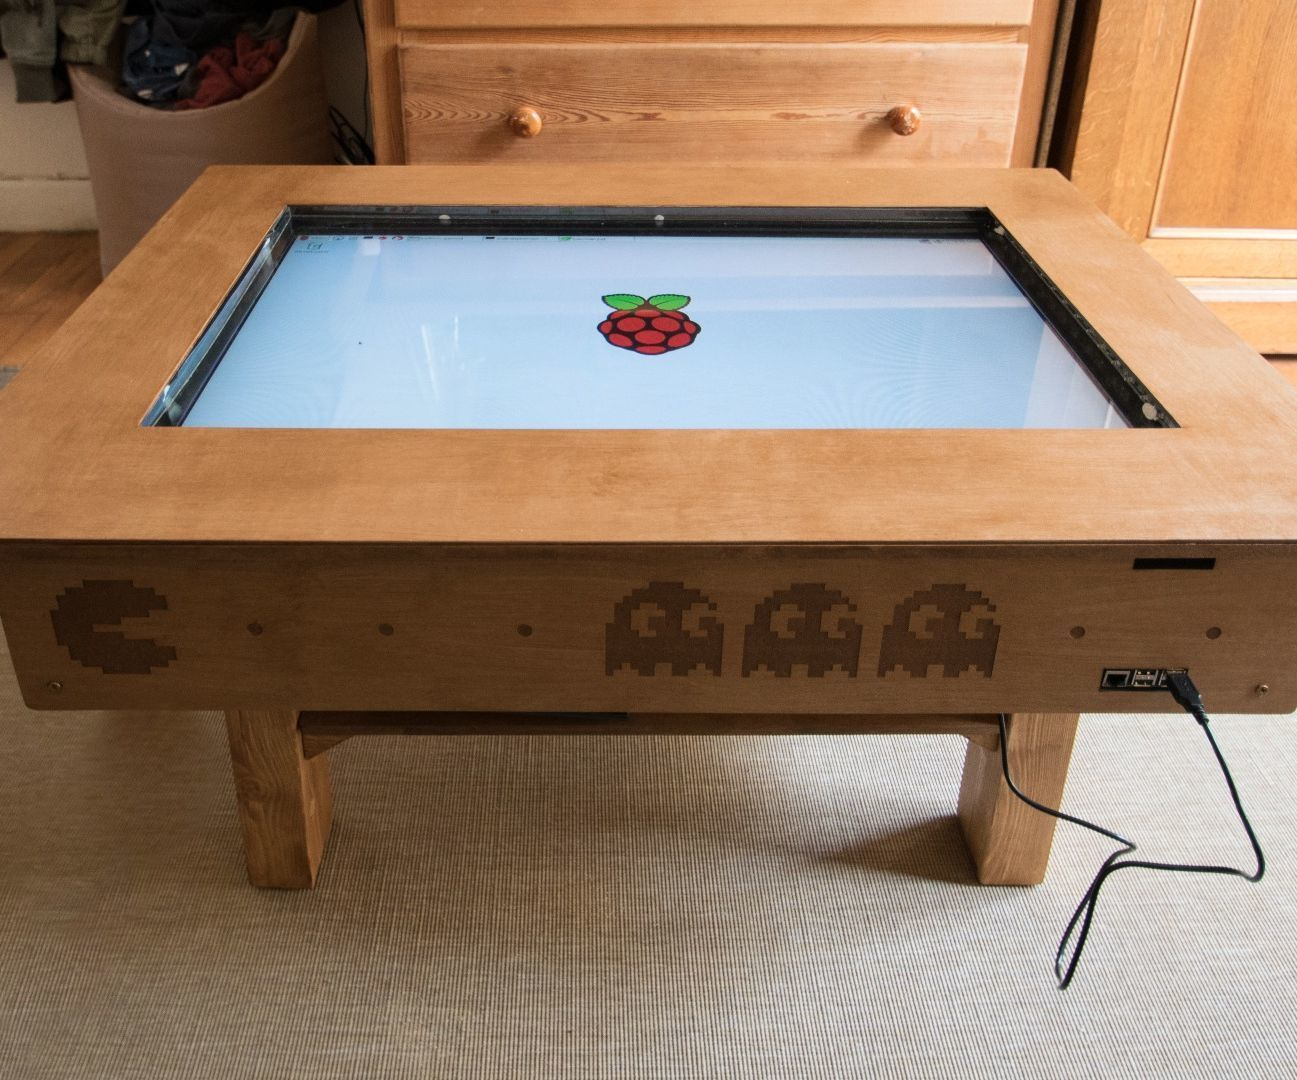 Touch Screen Coffee Table Diy With 32 Diy Coffee Table Diy Table Coffee Table [ 1080 x 1297 Pixel ]